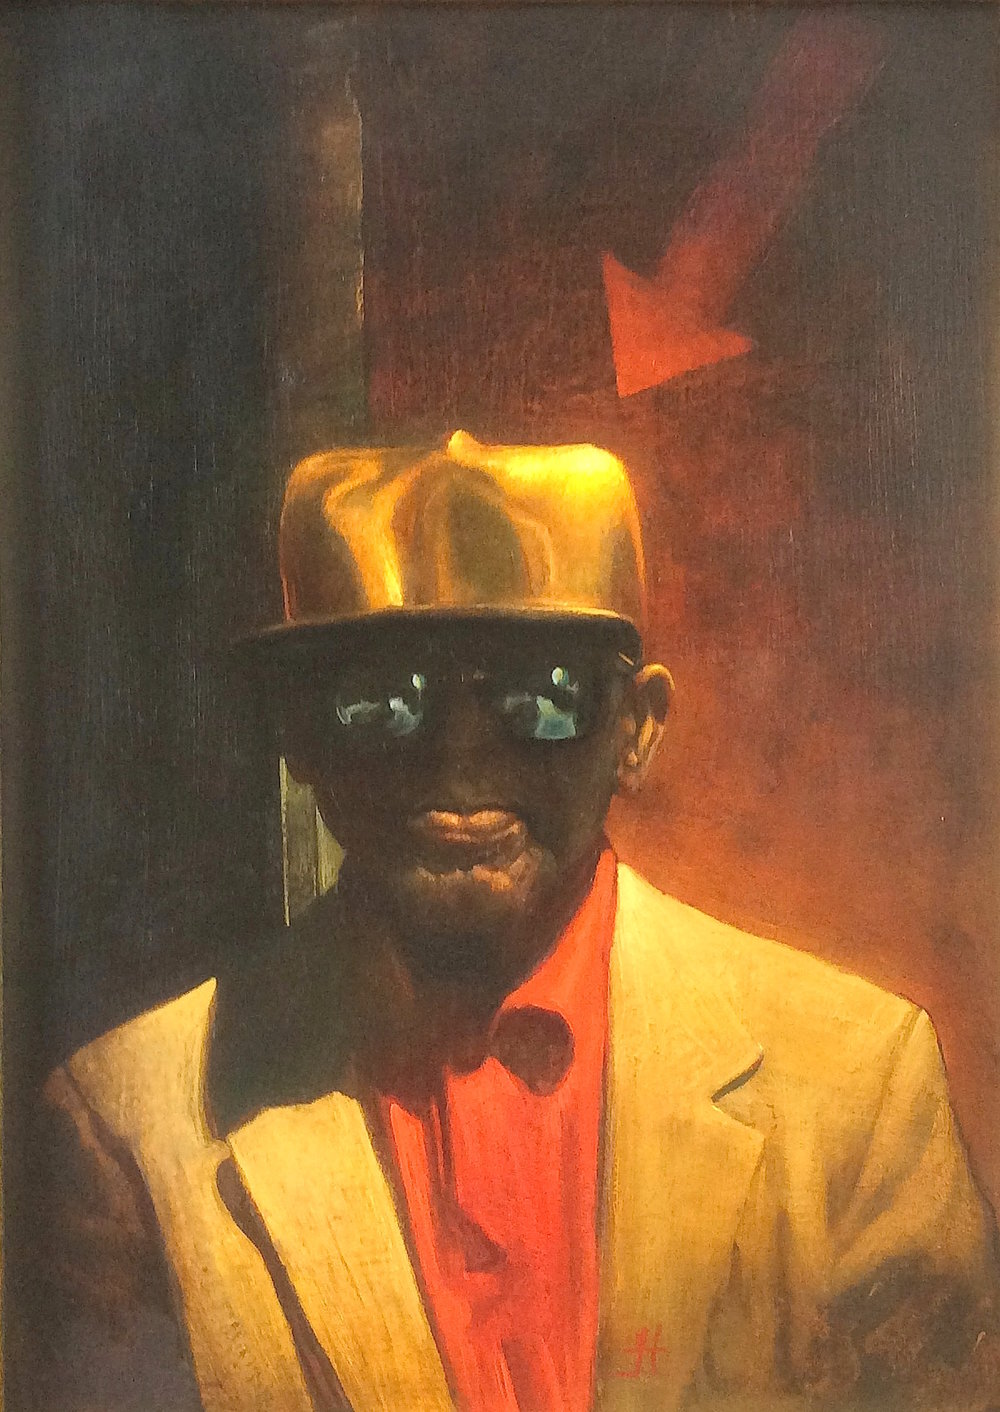 Title: Man with the Golden Hat  Size: 37 x 26 cm  Medium: Oil on panel  Price: £2,450